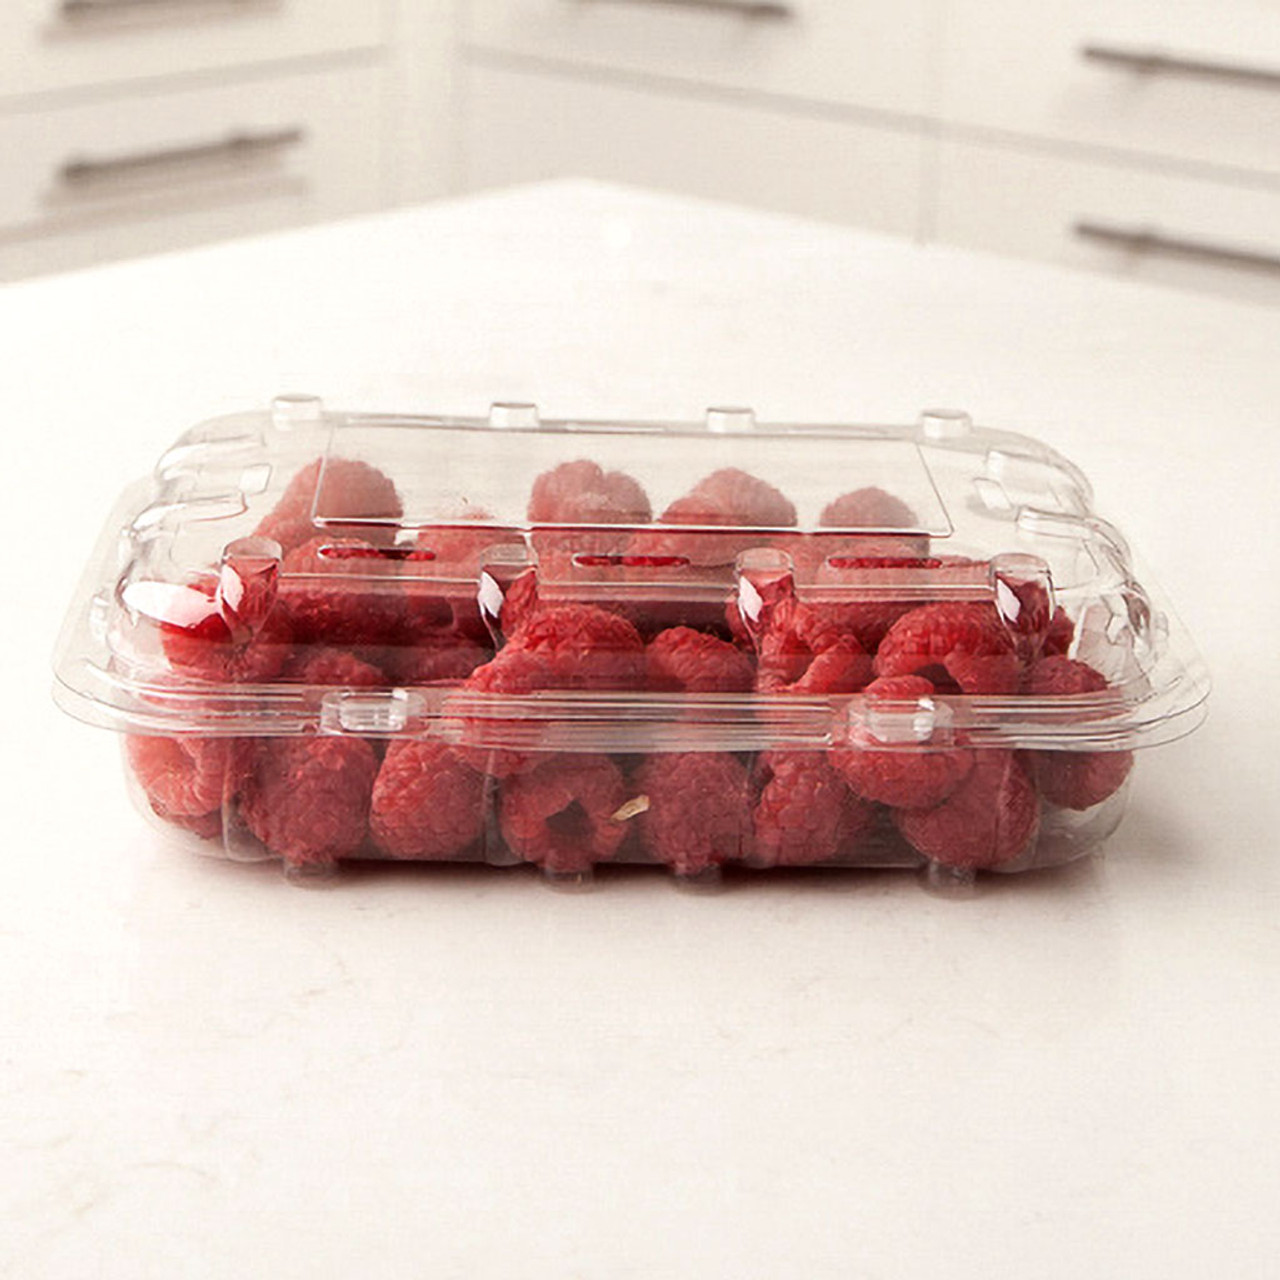 12oz Vented Berry Container